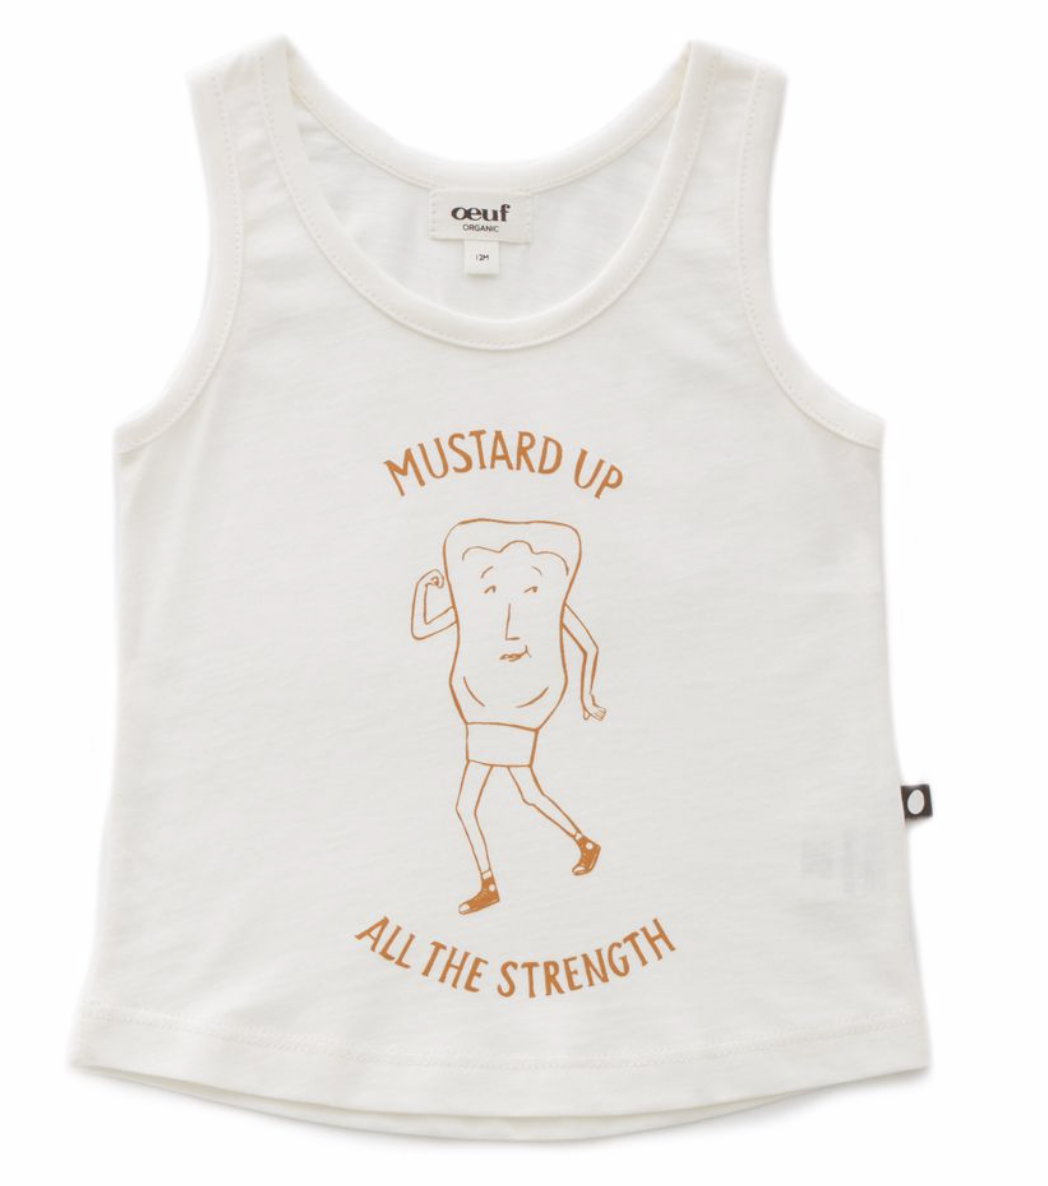 OEUF Mustard Up Tank Top